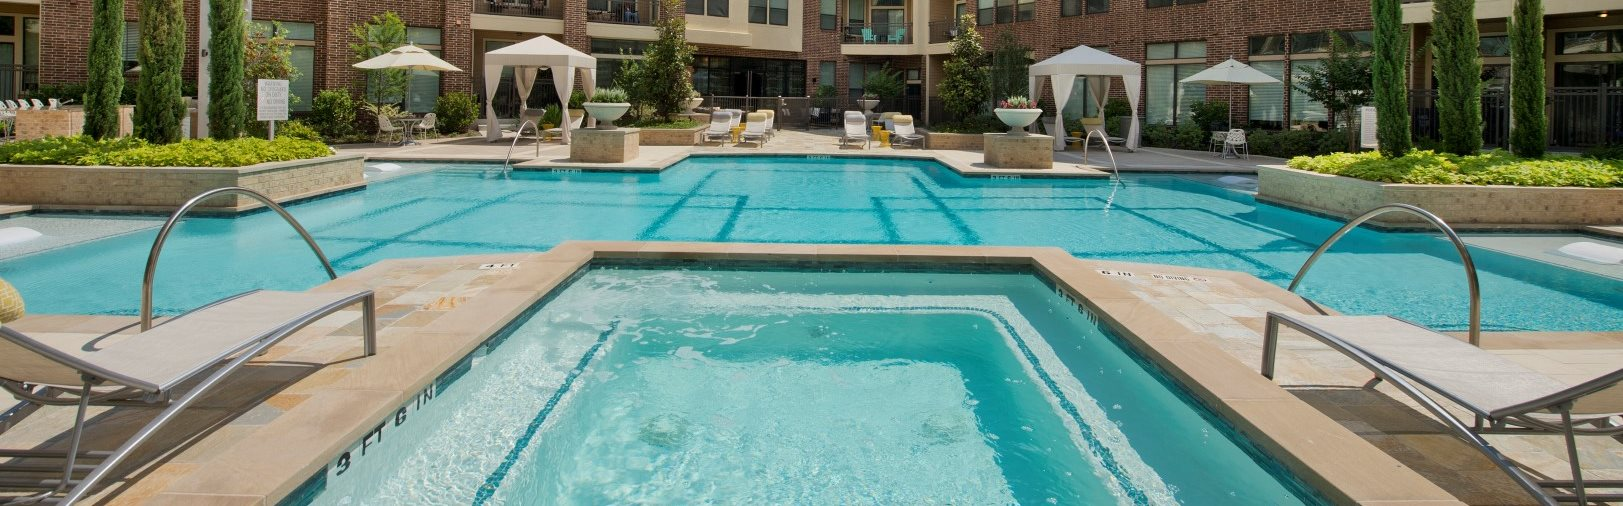 Pool view Apartments in Katy